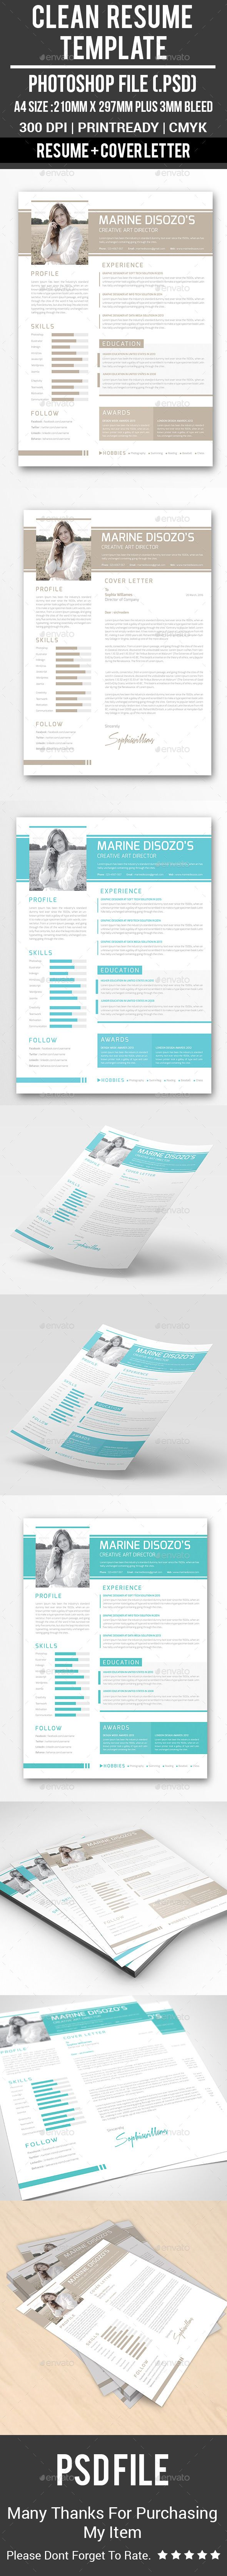 Clean Resume Template PSD                                                                                                                                                                                 More